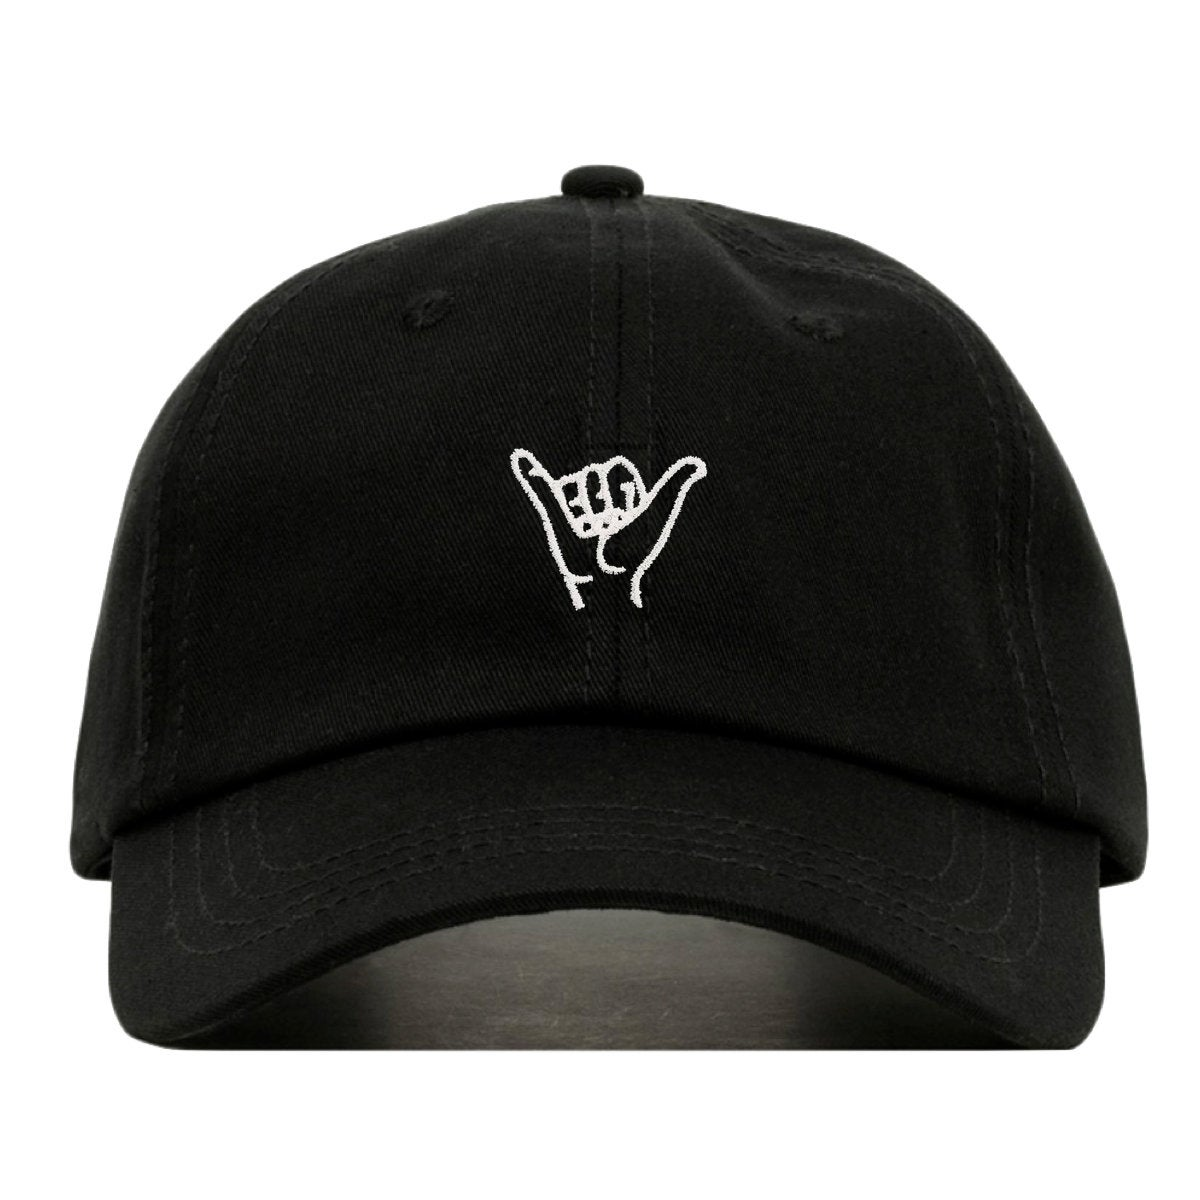 2019 New Hip Hop Hat Summer Breathable Baseball Cap Outdoor Casual Dad Hats Fashion Sports Caps